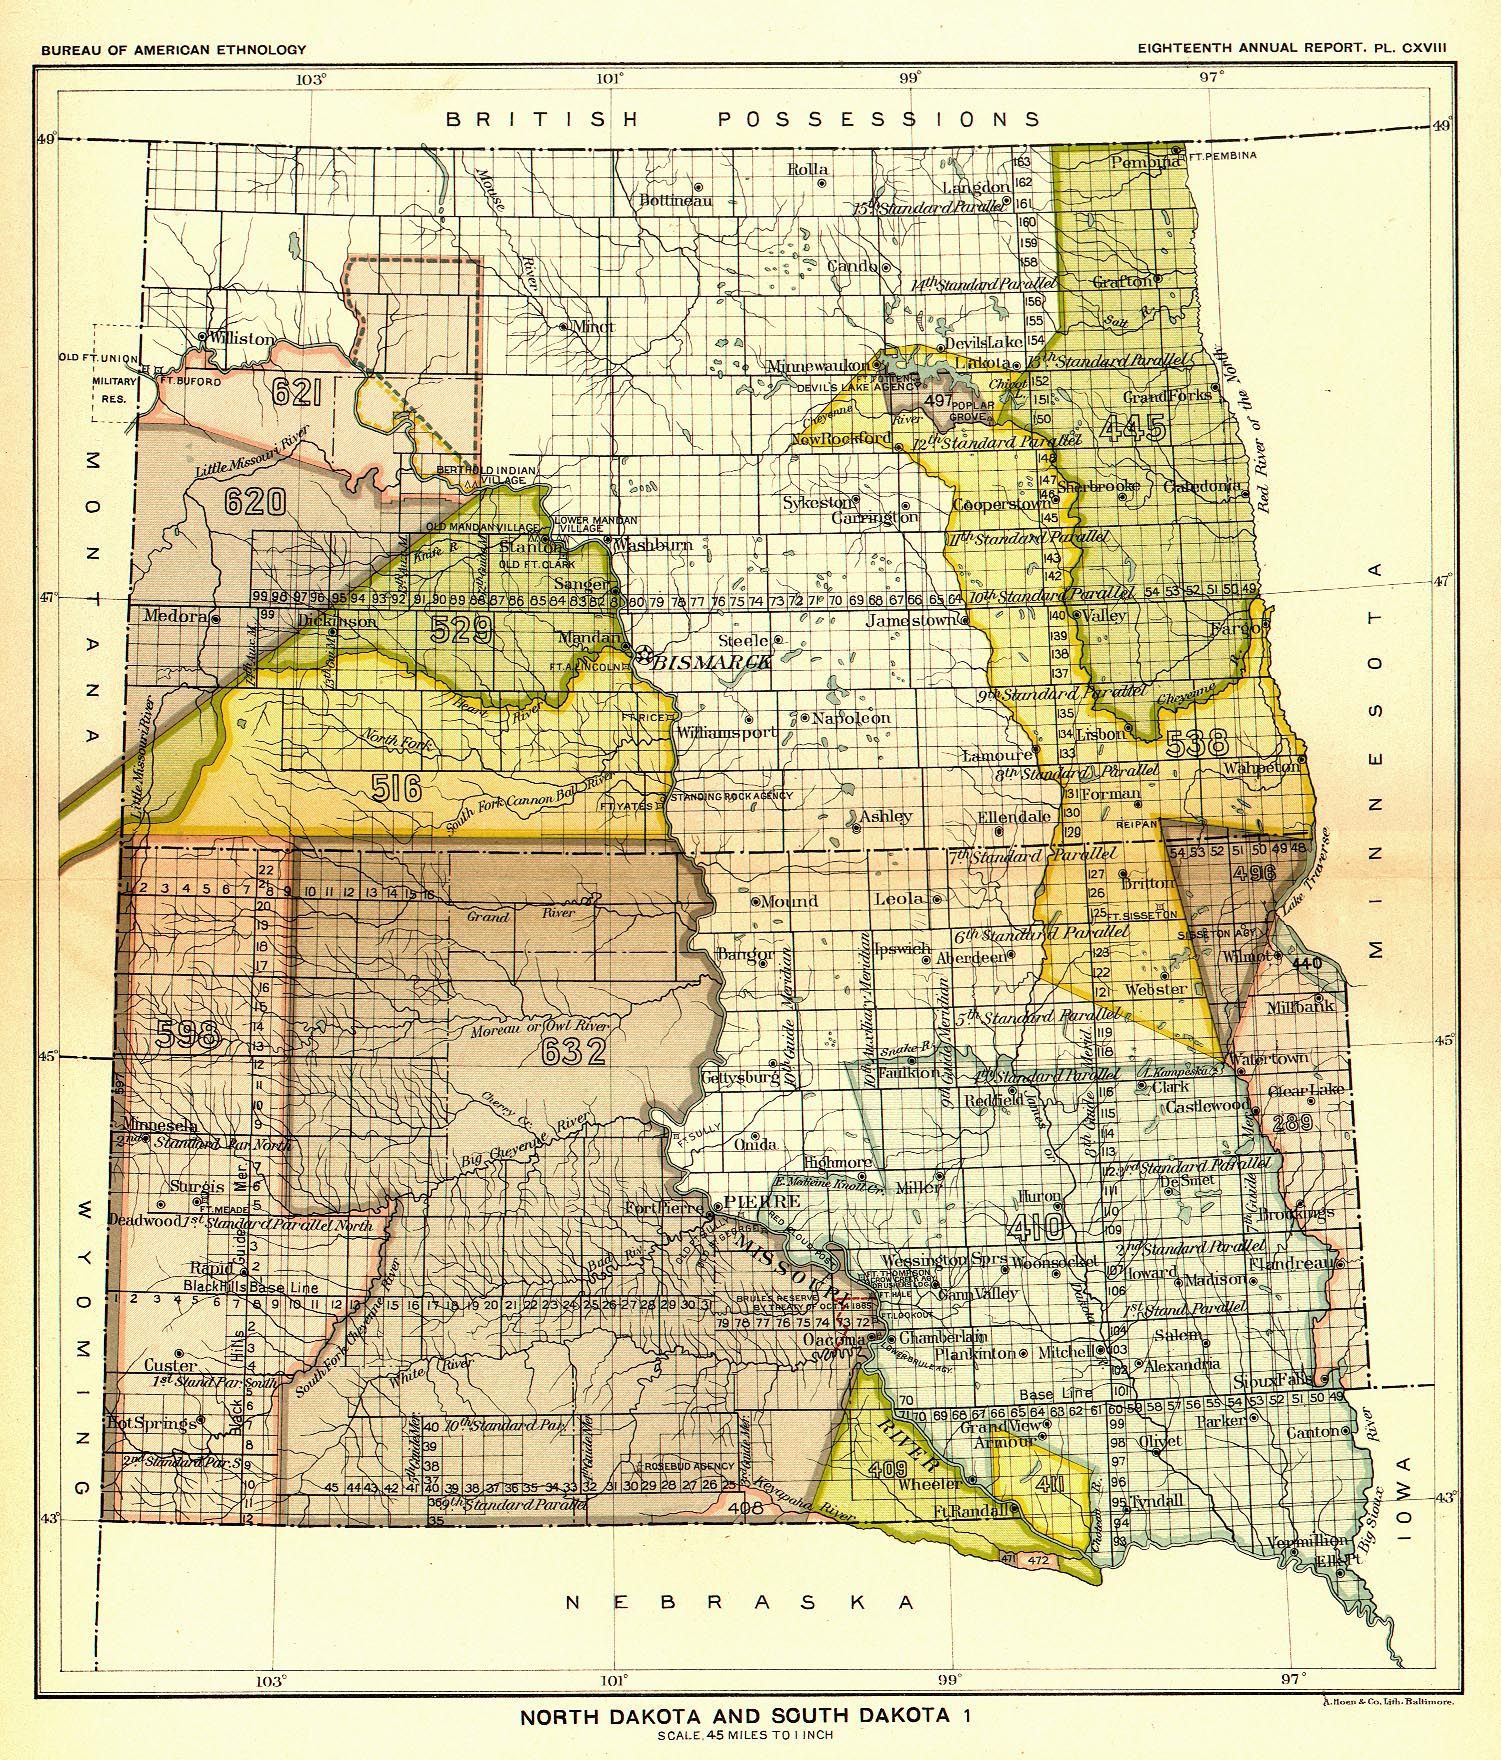 Indian Land Cessions In The U S North Dakota And South Dakota - Map of the us with dakotas together